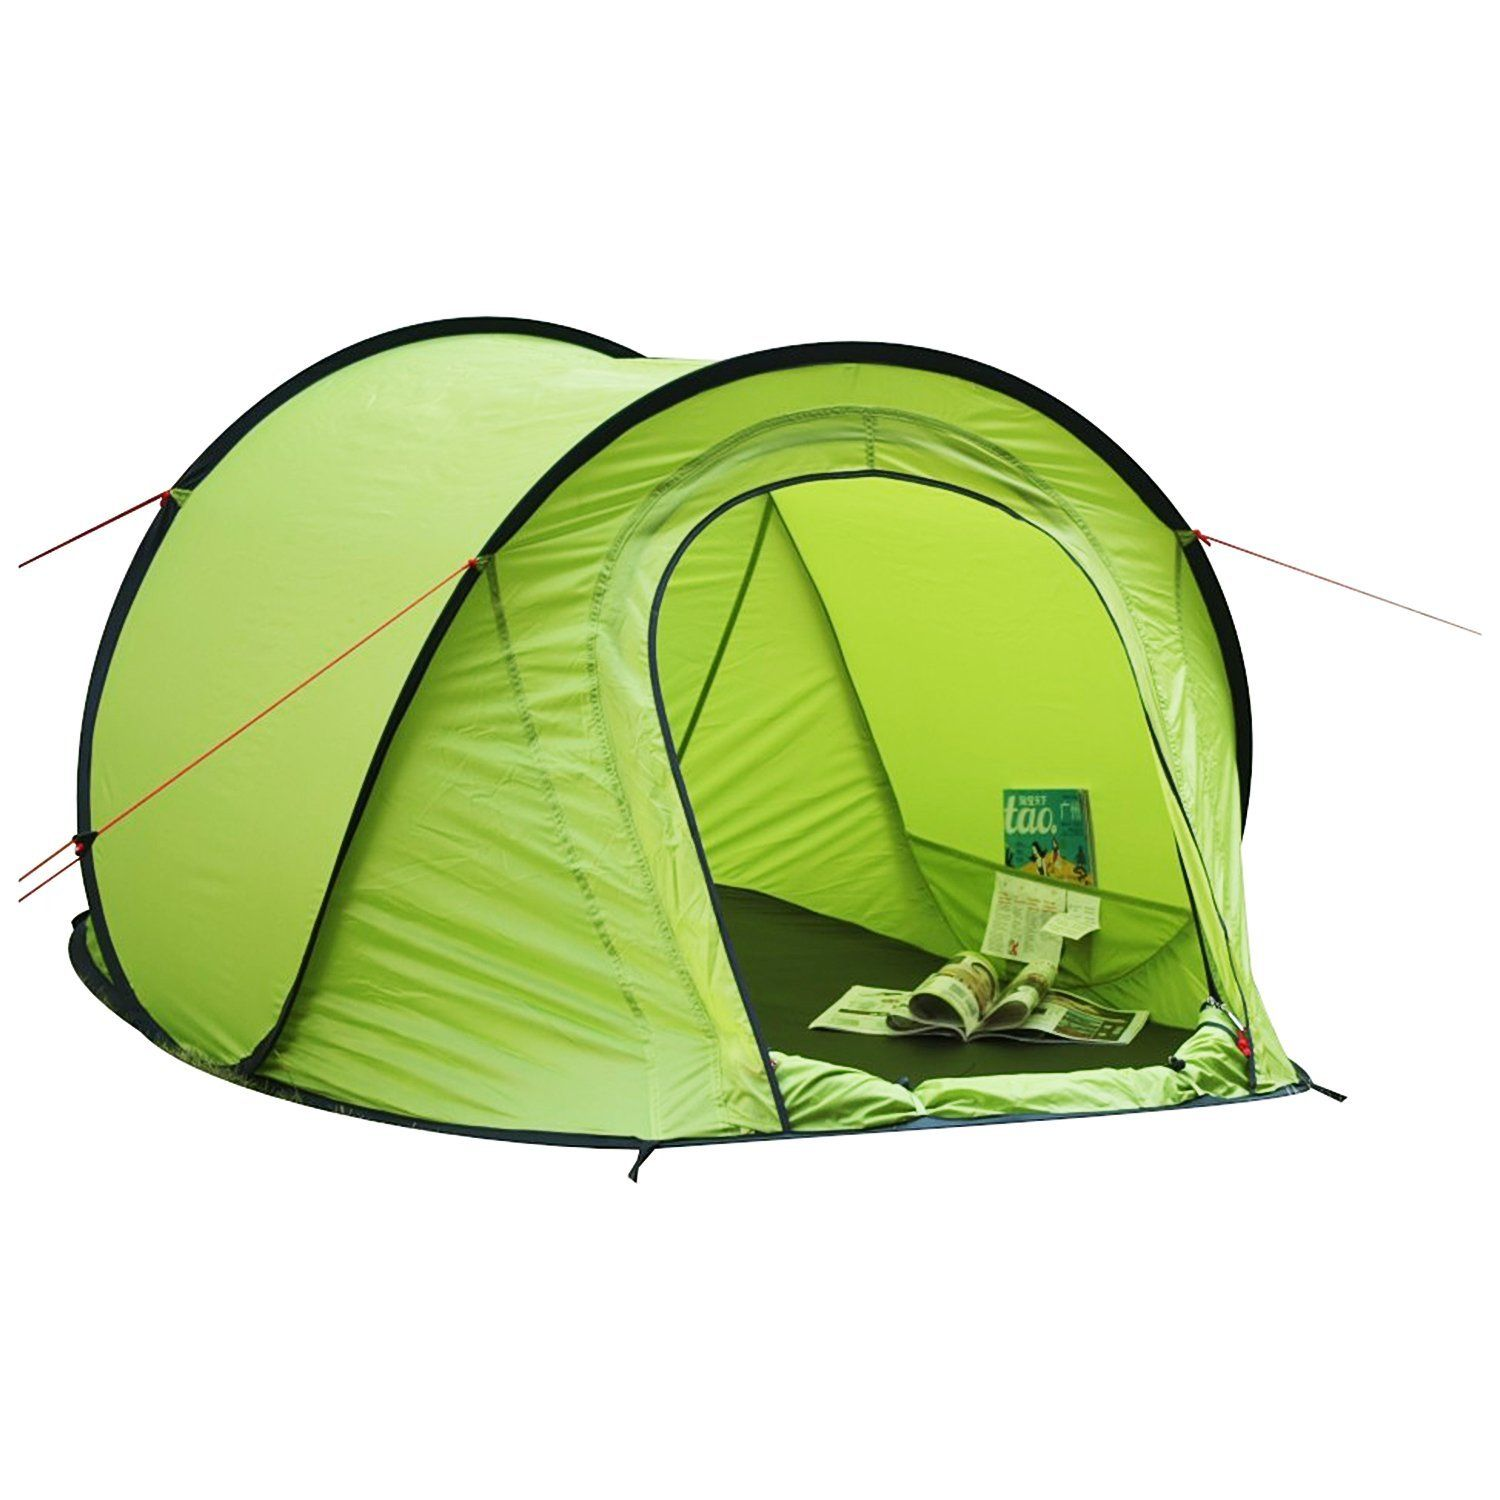 Bestmart INC Outdoor 2 Person C&ing Hiking Tent Waterproof Instant Pop Up Shelter -- Additional  sc 1 st  Pinterest & Bestmart INC Outdoor 2 Person Camping Hiking Tent Waterproof ...